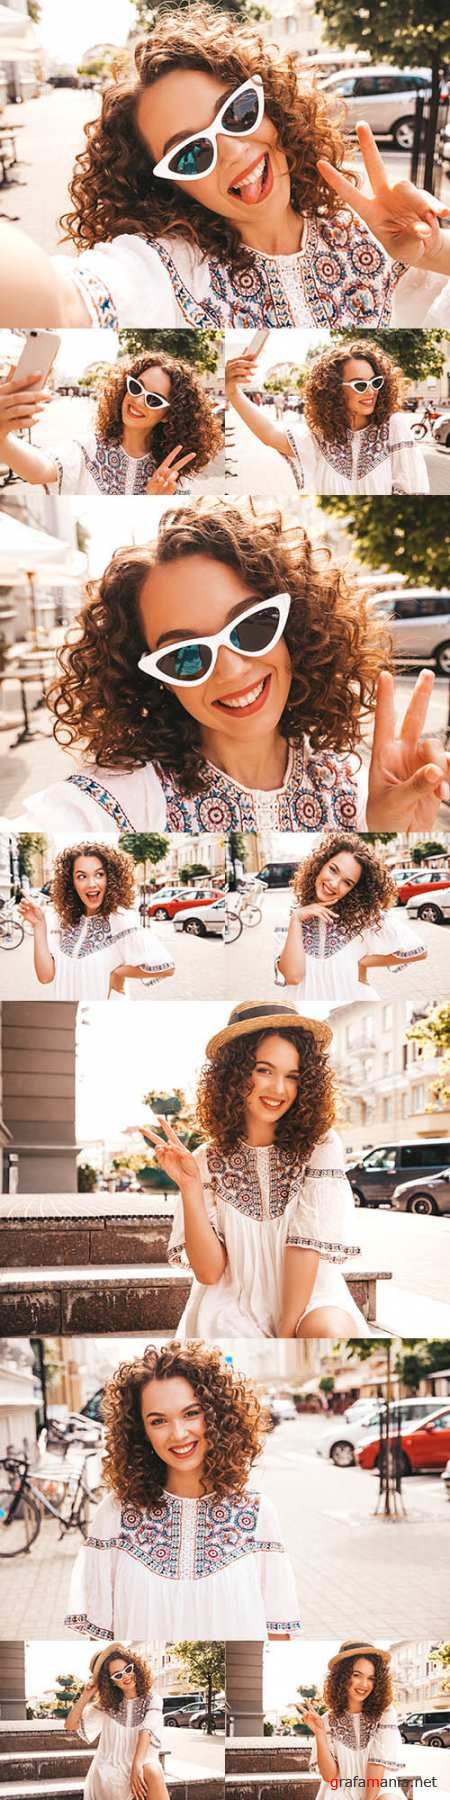 Smiling girl with hairstyle afro curls in dress